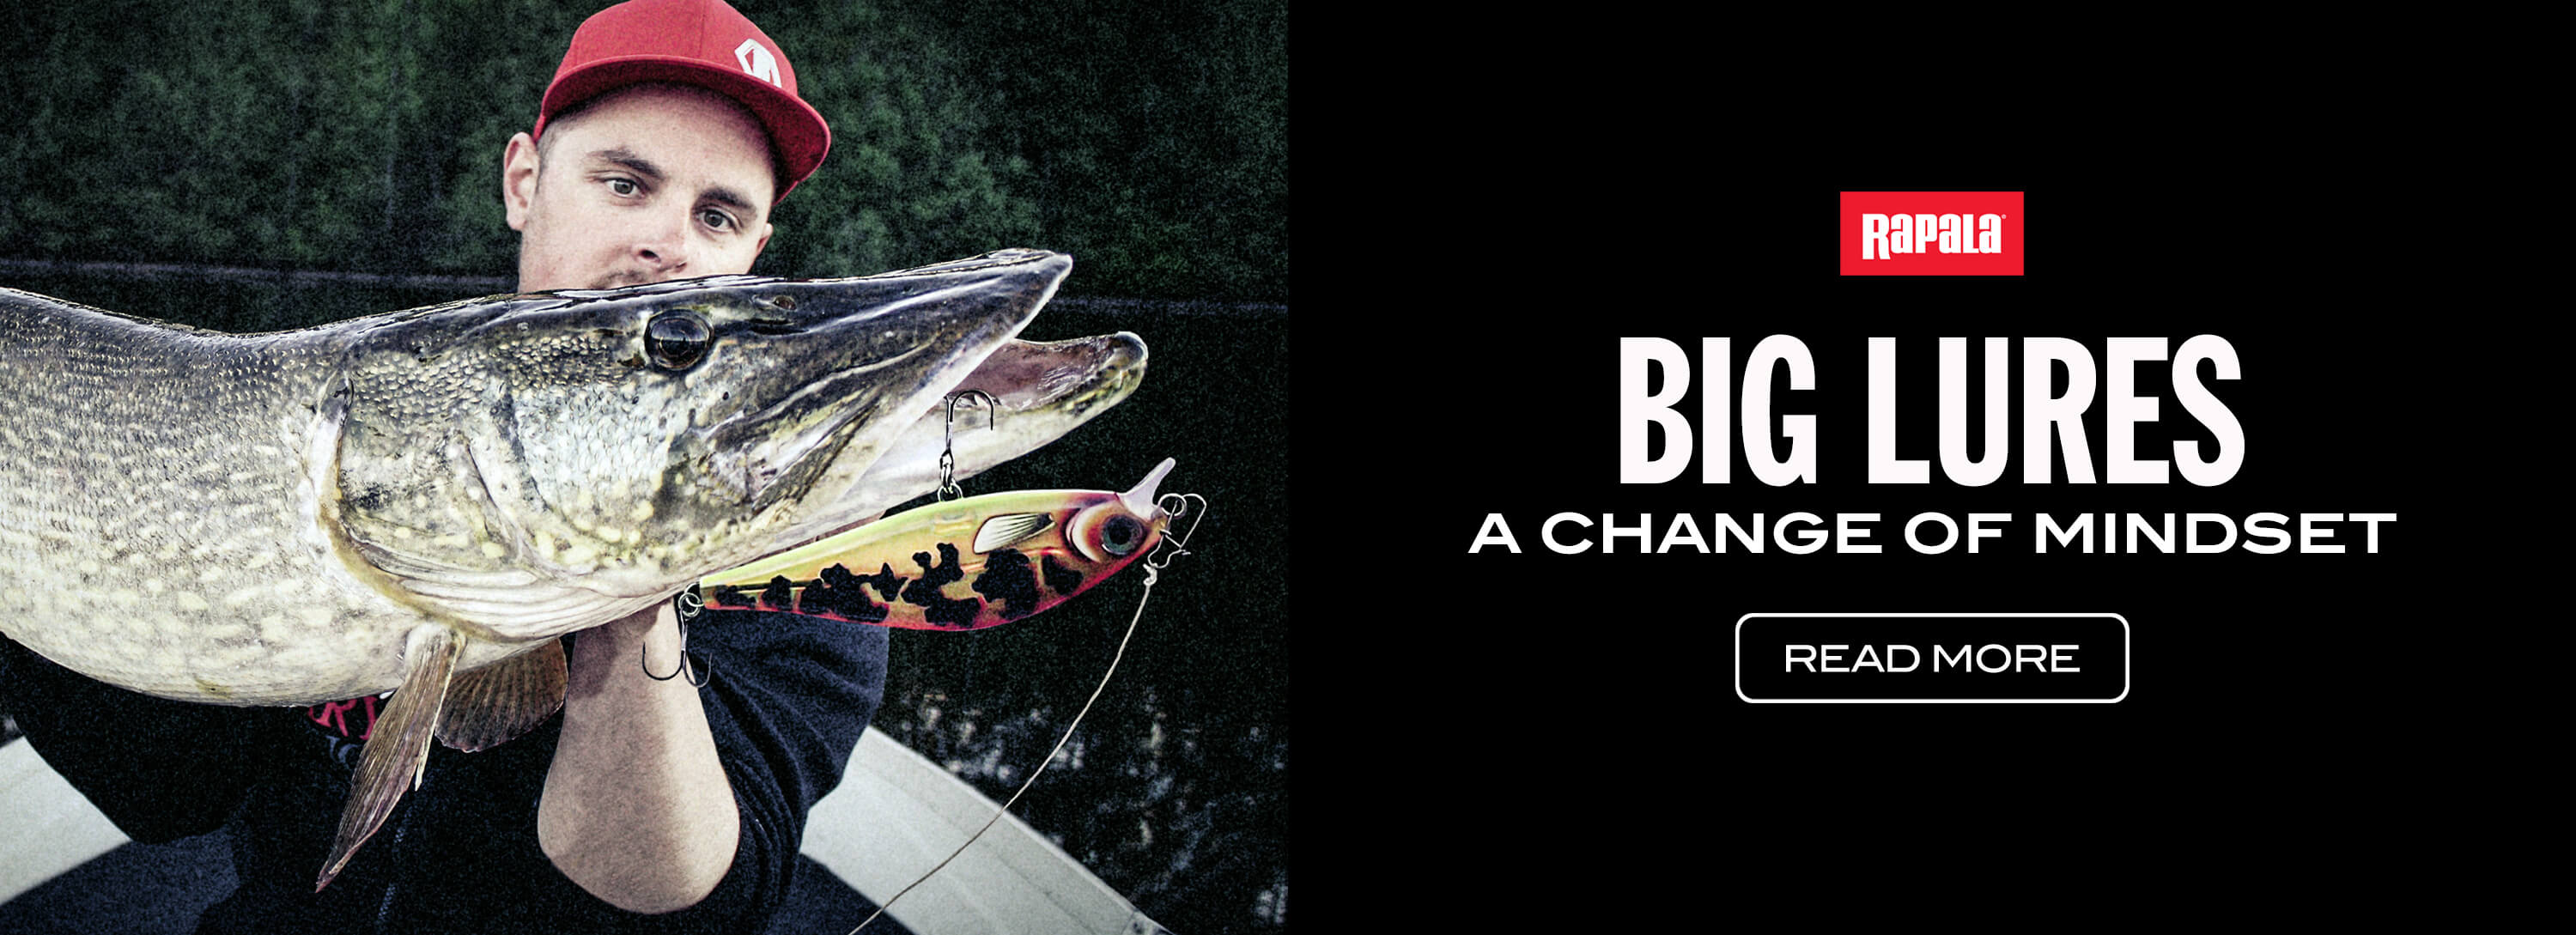 Big Lures - A Change Of Mindset